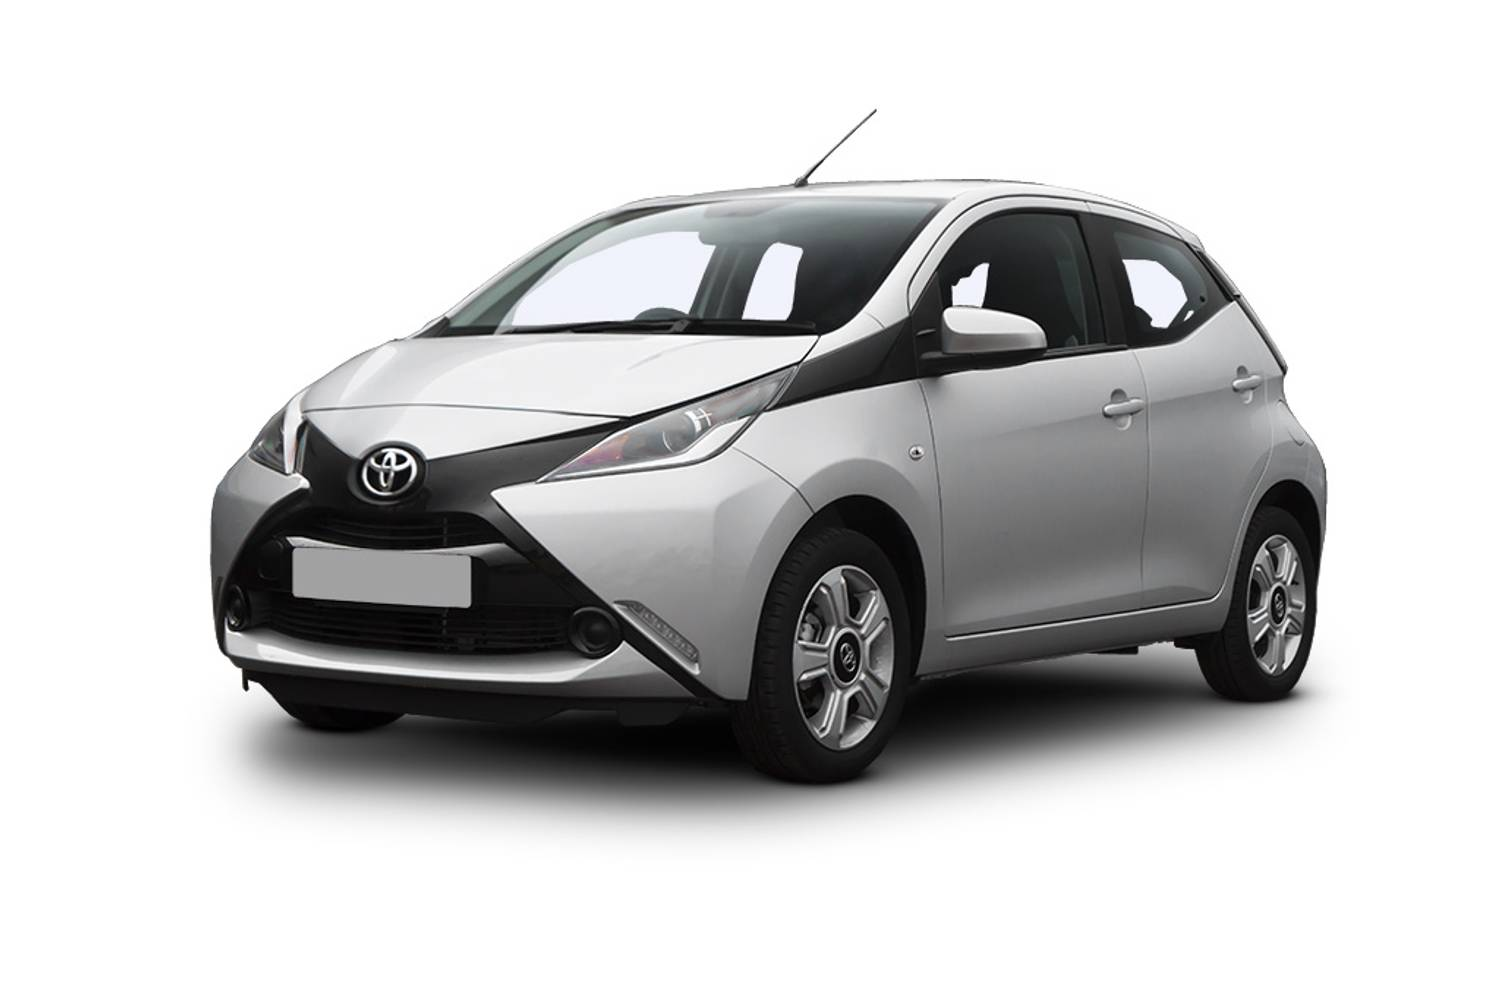 new toyota aygo hatchback 1 0 vvt i x play 5 door x shift 2014 for sale. Black Bedroom Furniture Sets. Home Design Ideas